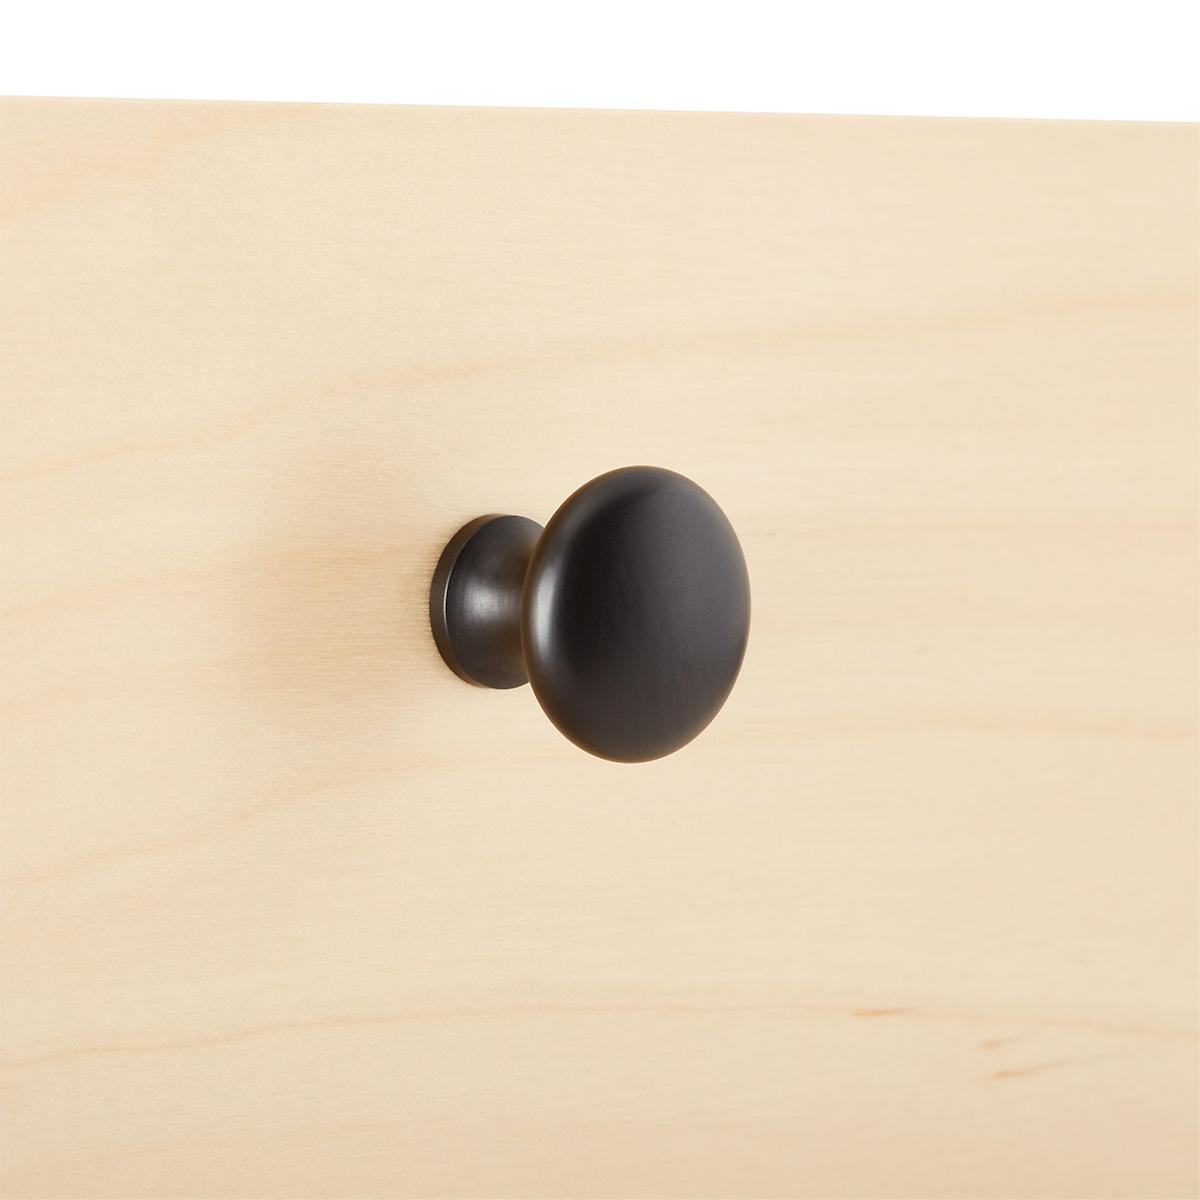 Elfa Decor Oil Rubbed Bronze Classic Knob